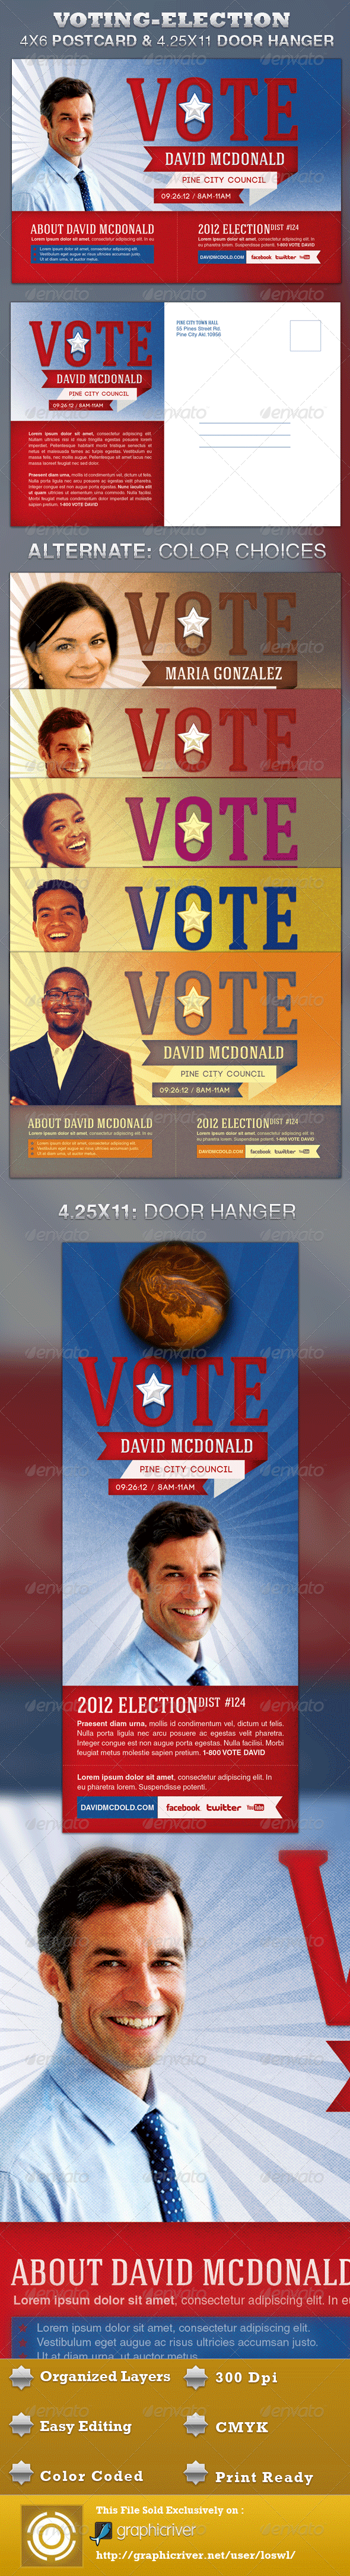 Voting-Election Postcard and Door Hanger Template - Events Flyers